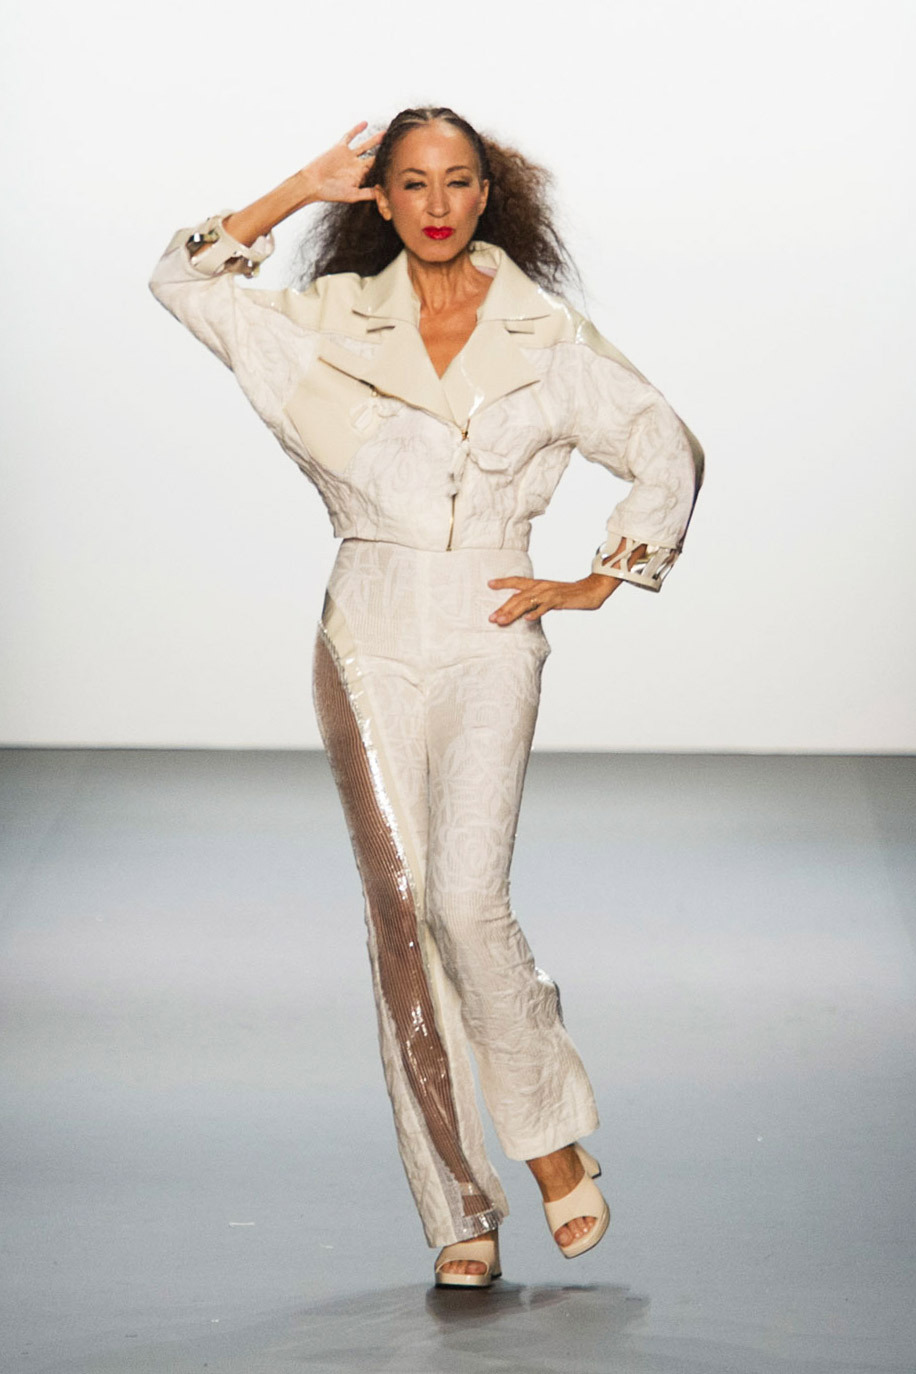 The legendary model Pat Cleveland finished the show and boy did she work that runway!